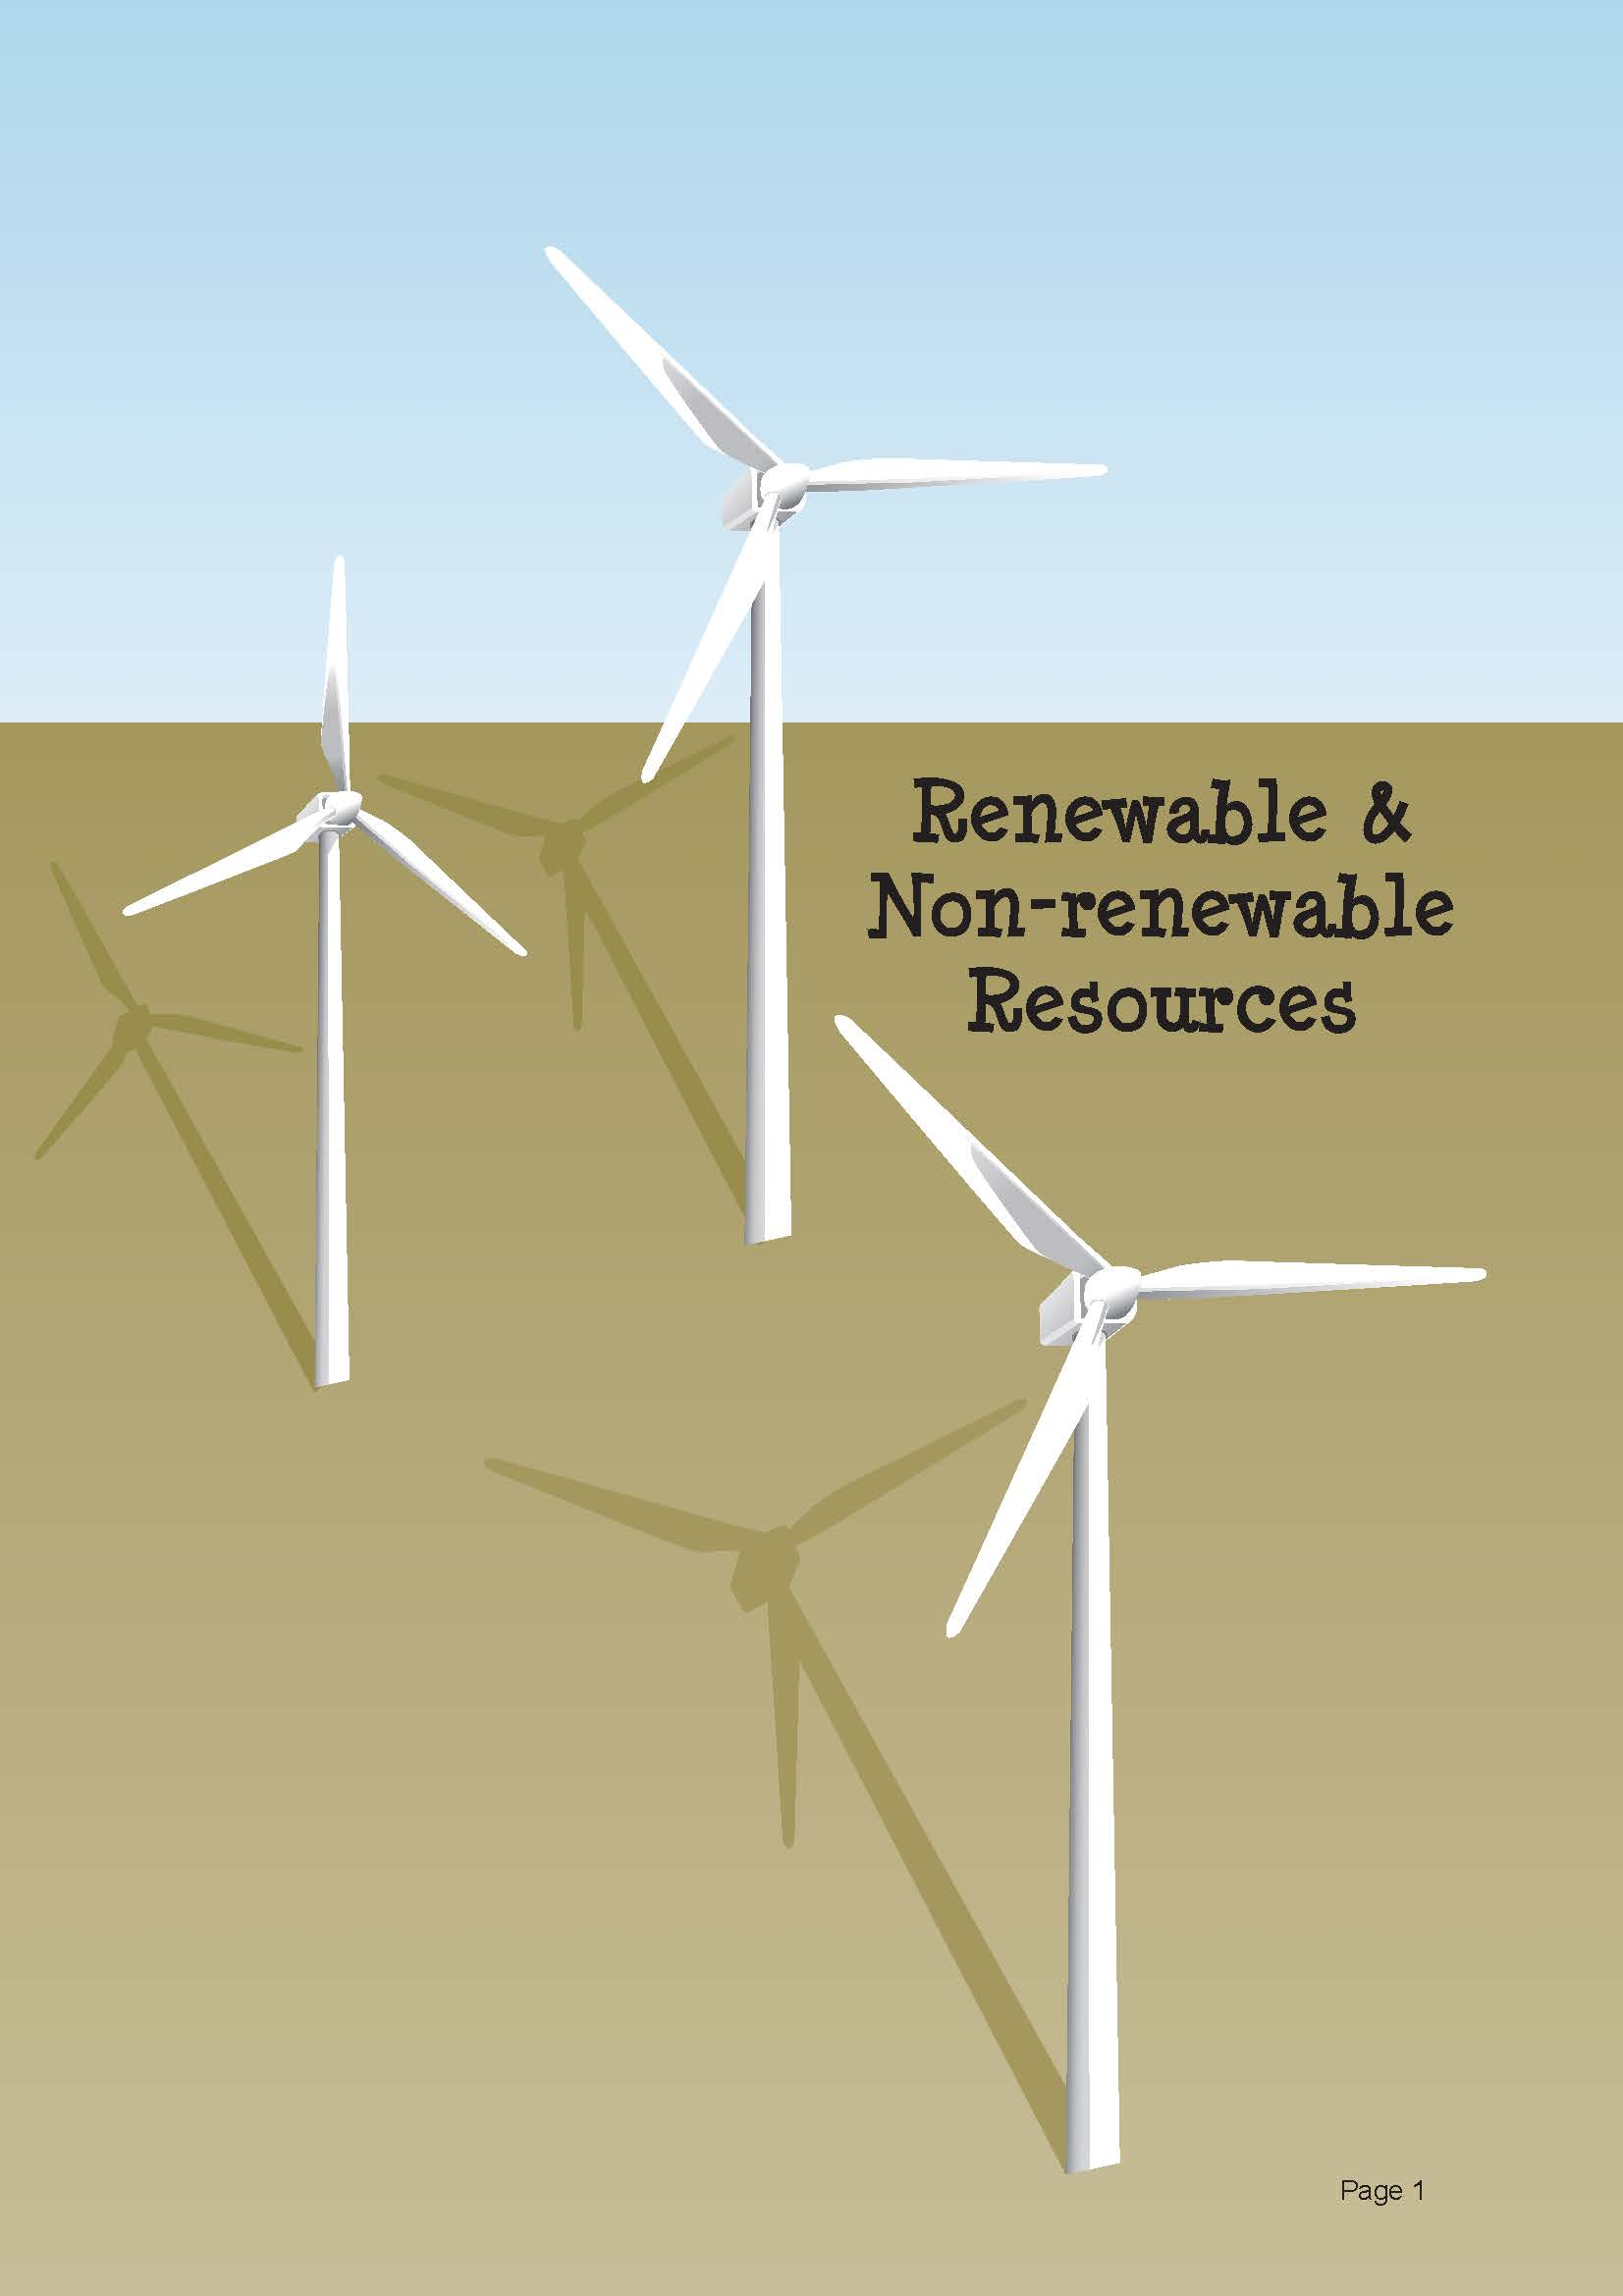 Renewable & Non-renewable Resources